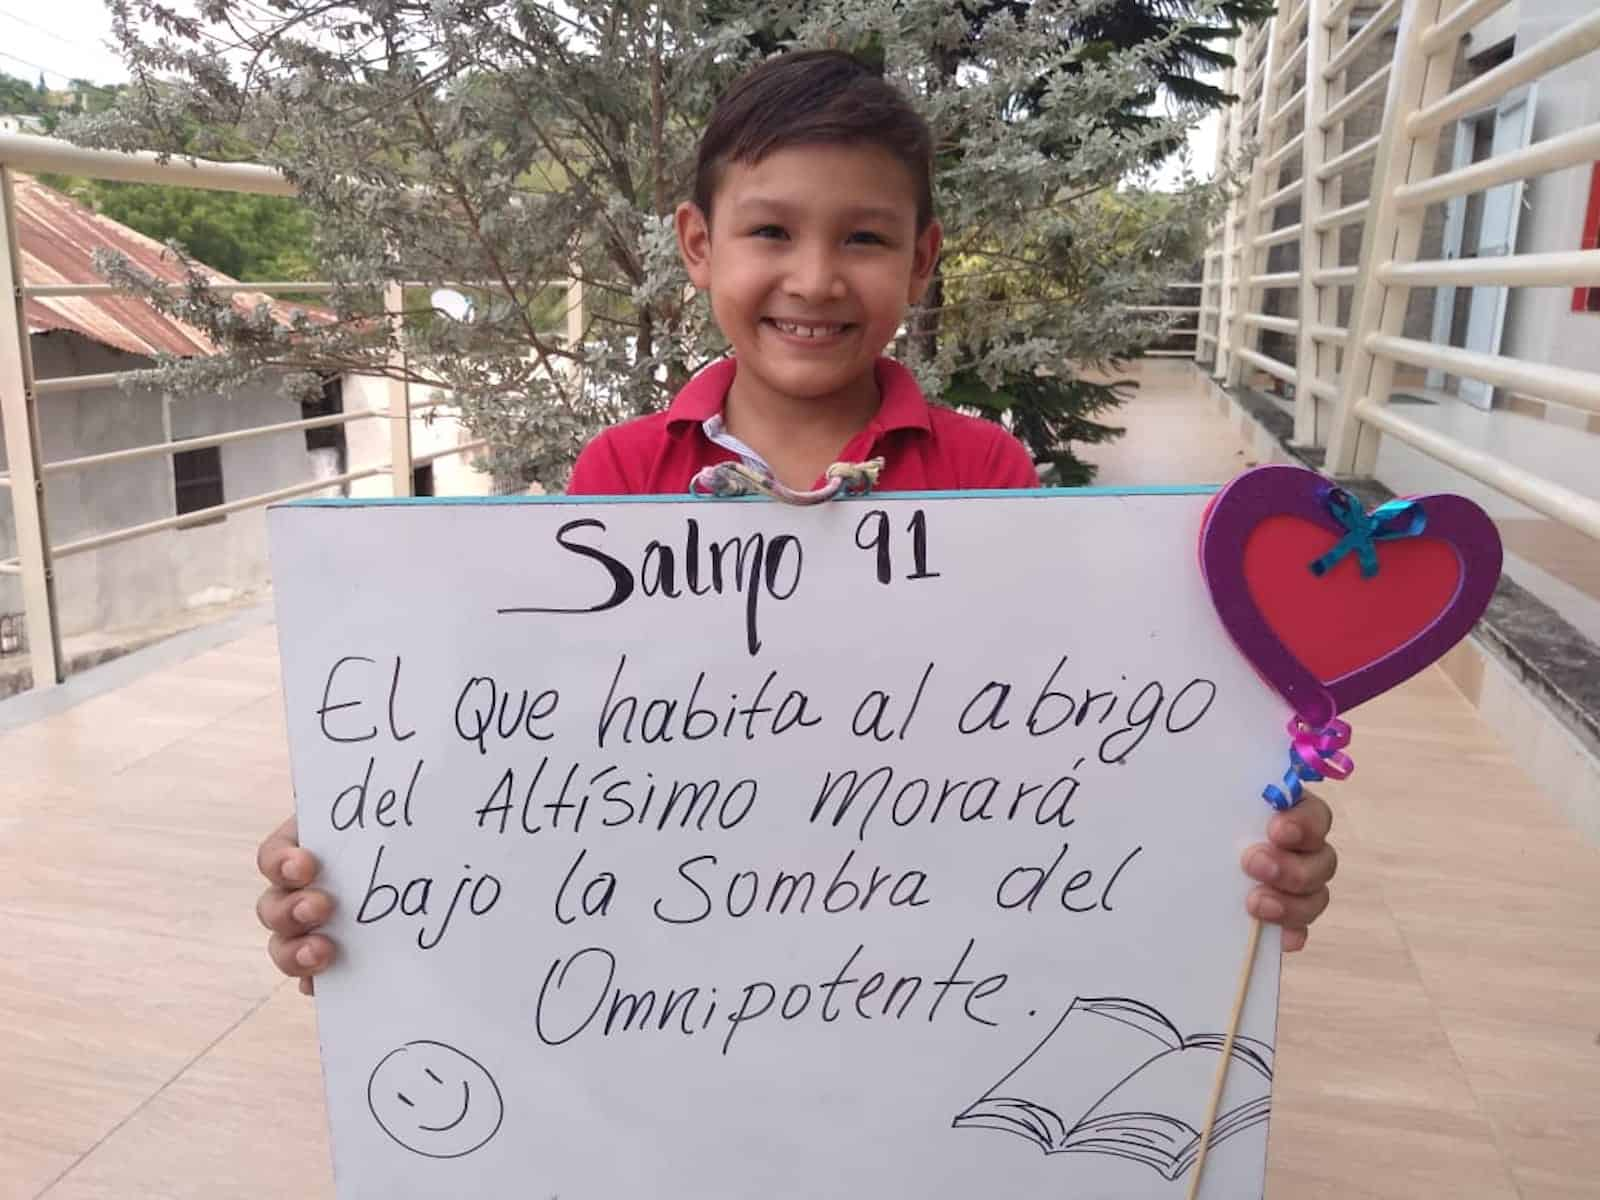 A boy holds a poster with a Bible verse written on it in Spanish.